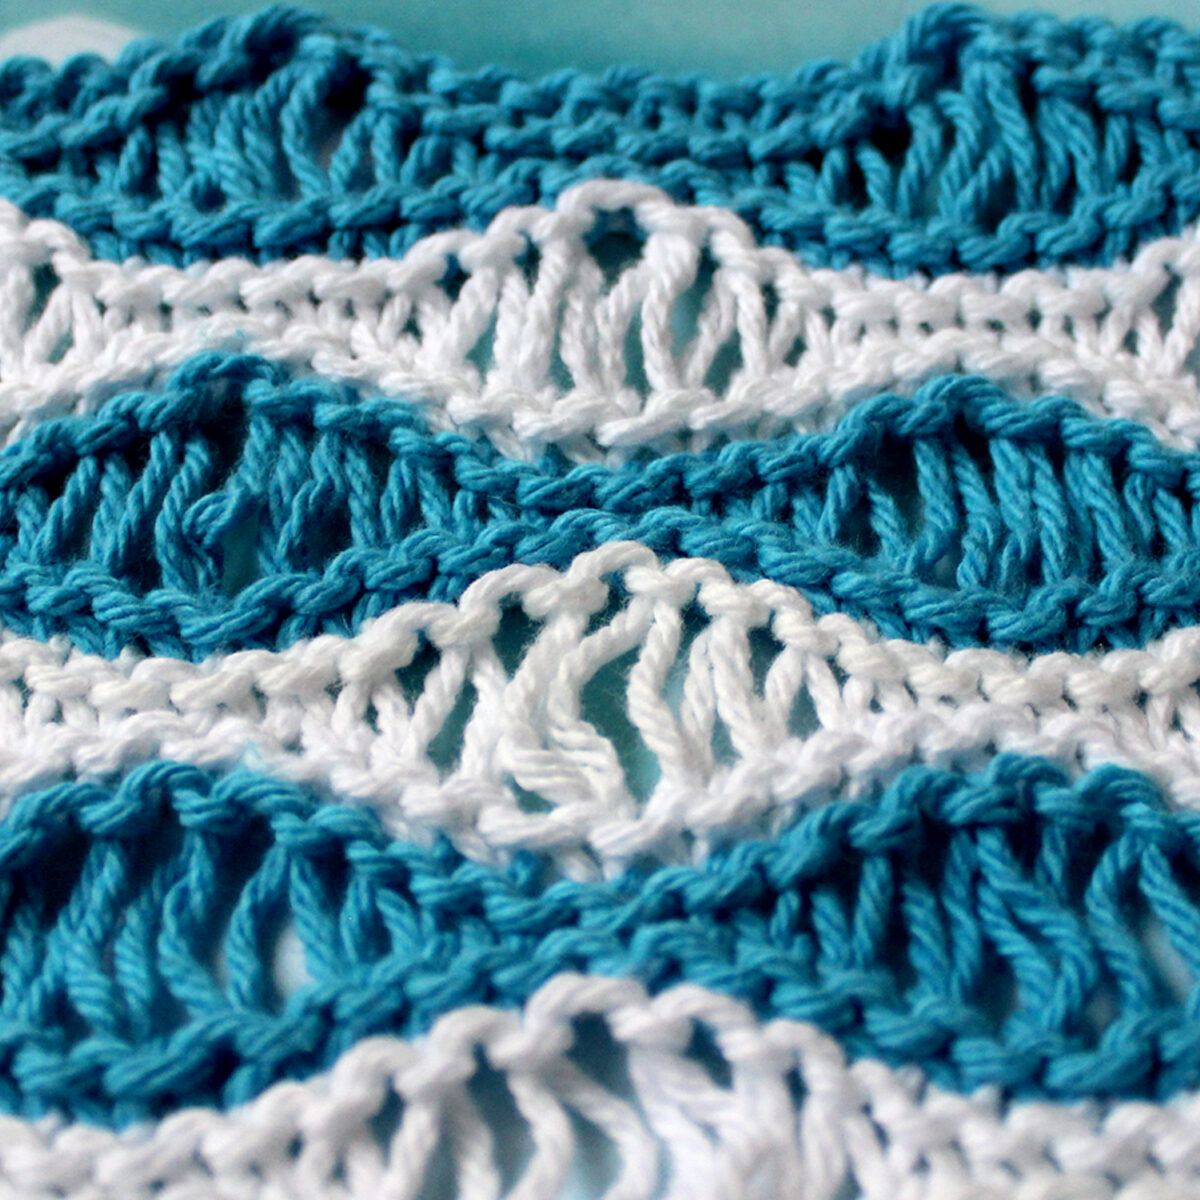 Knitted swatch in Sea Foam Wave pattern in horizontal stripes of blue and white color yarn.